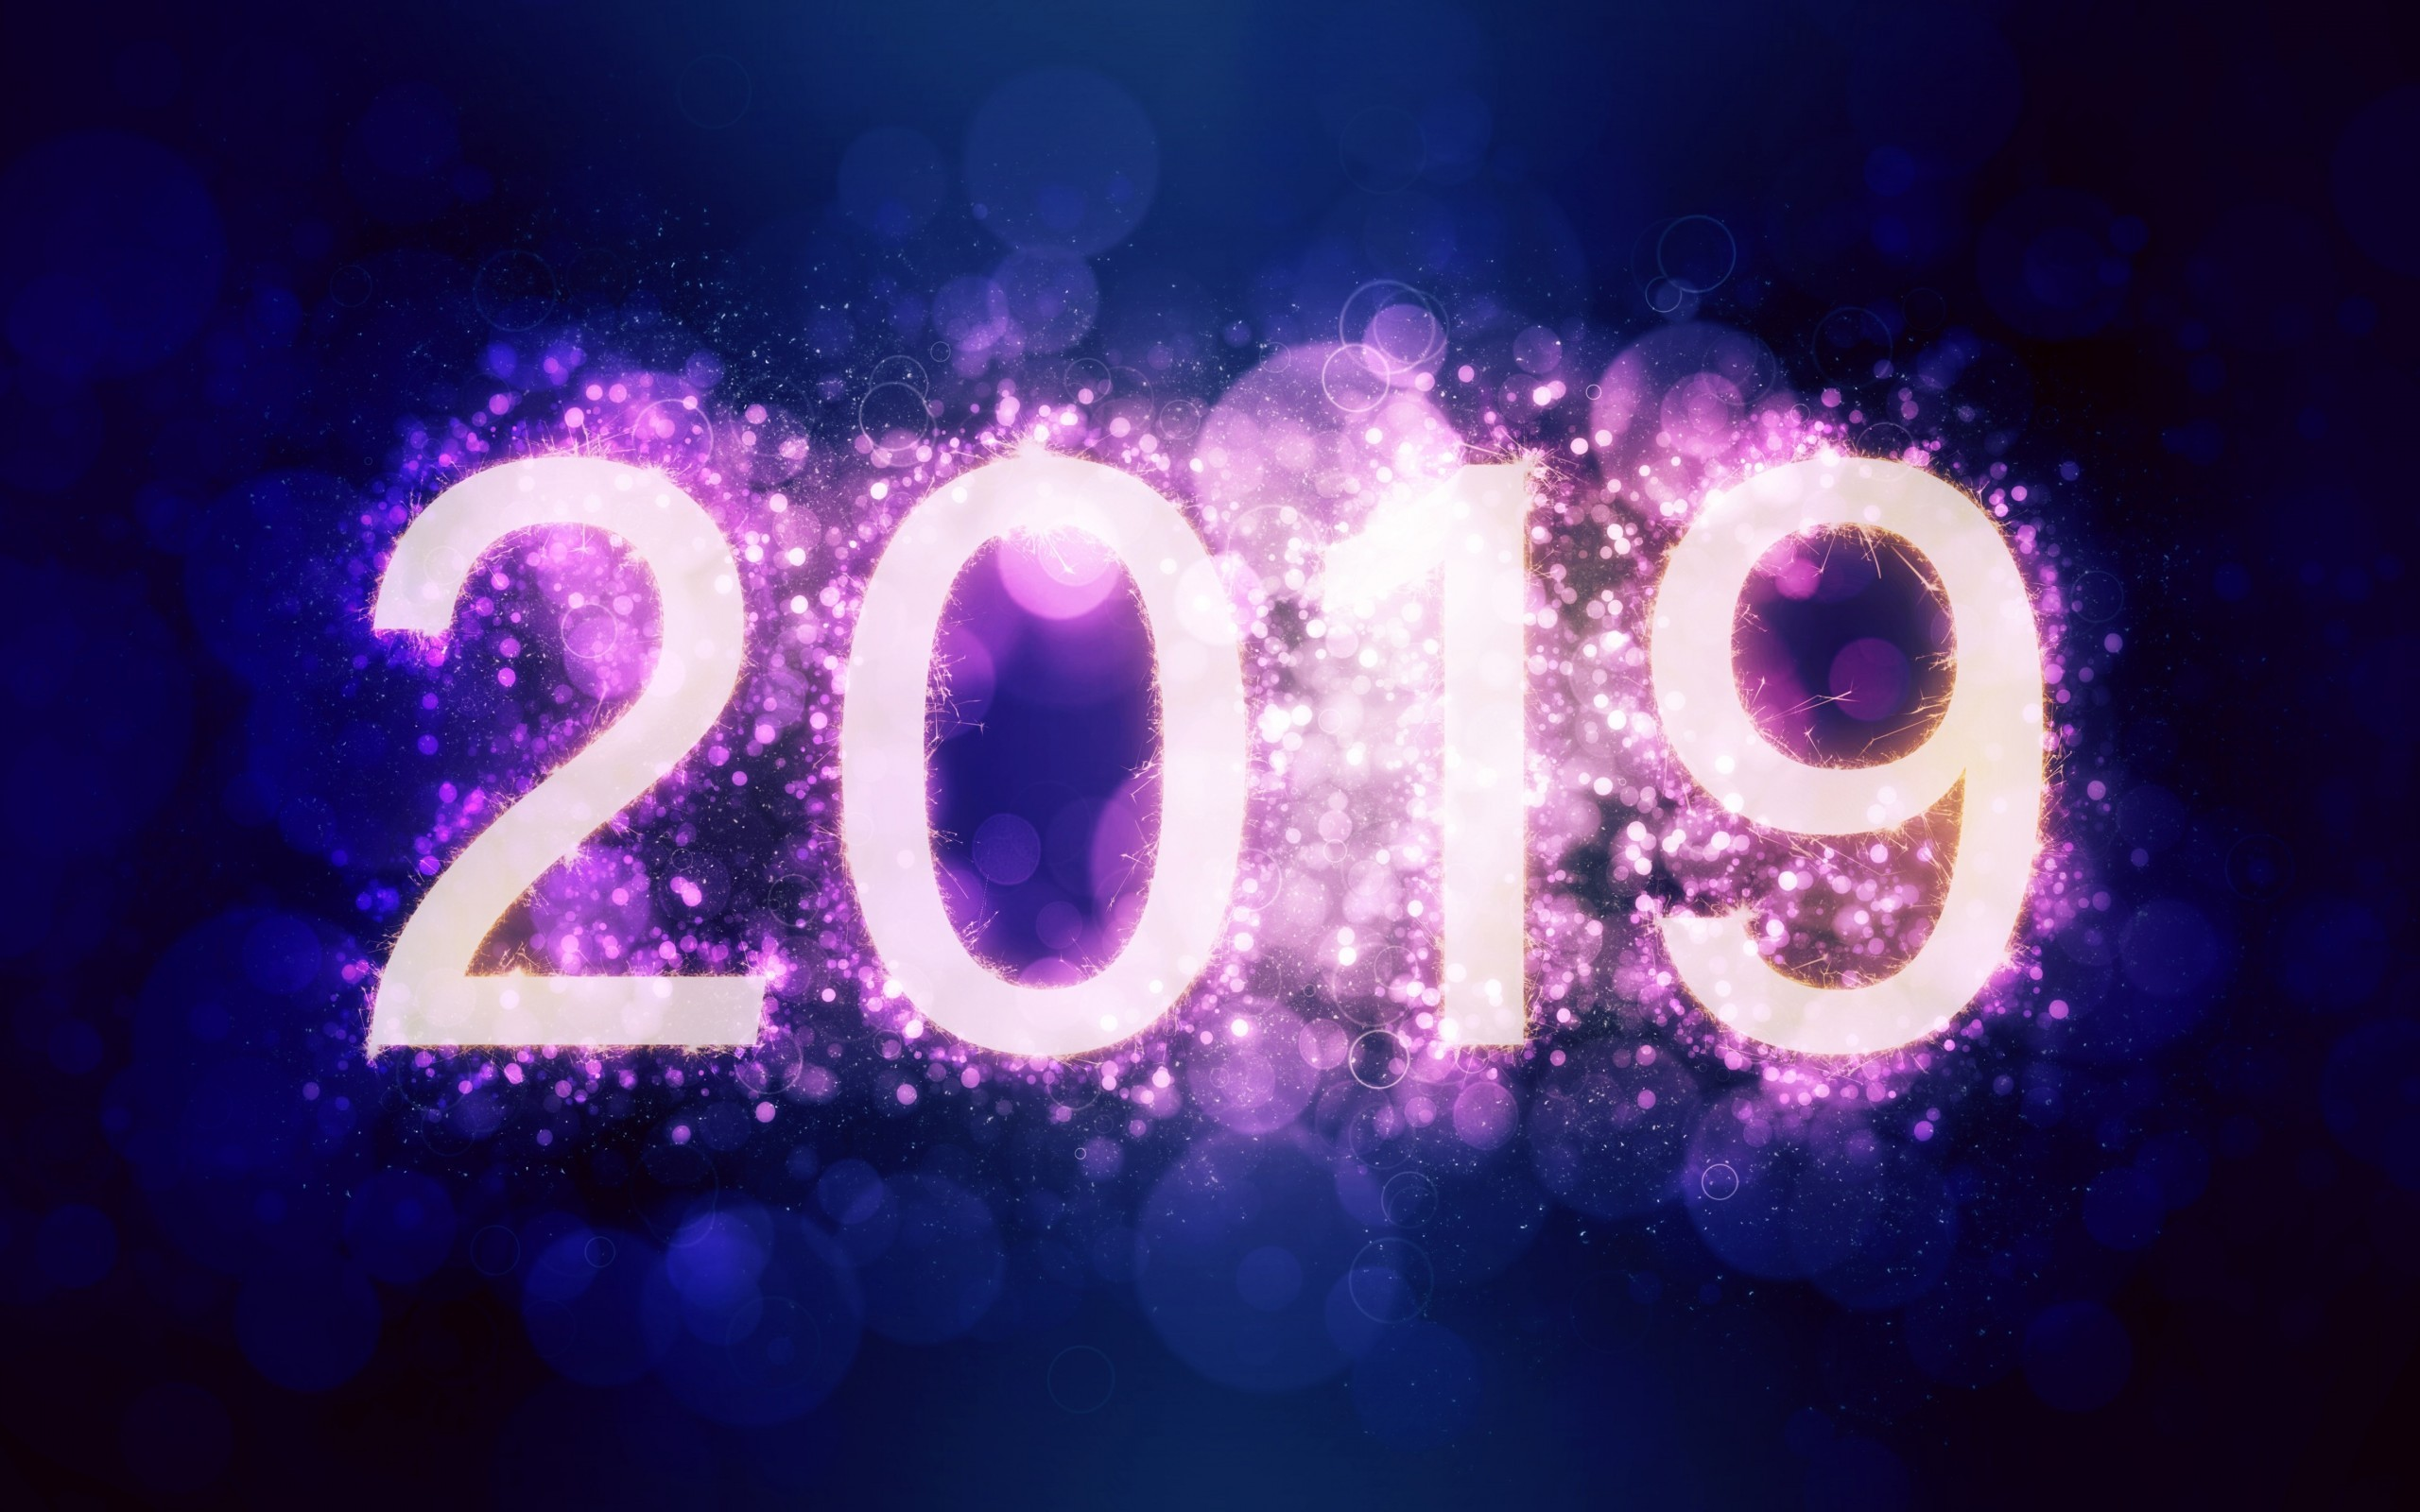 Happy New Year 2019, Digital Art, Numbers, Merry Christmas - My 2019 , HD Wallpaper & Backgrounds